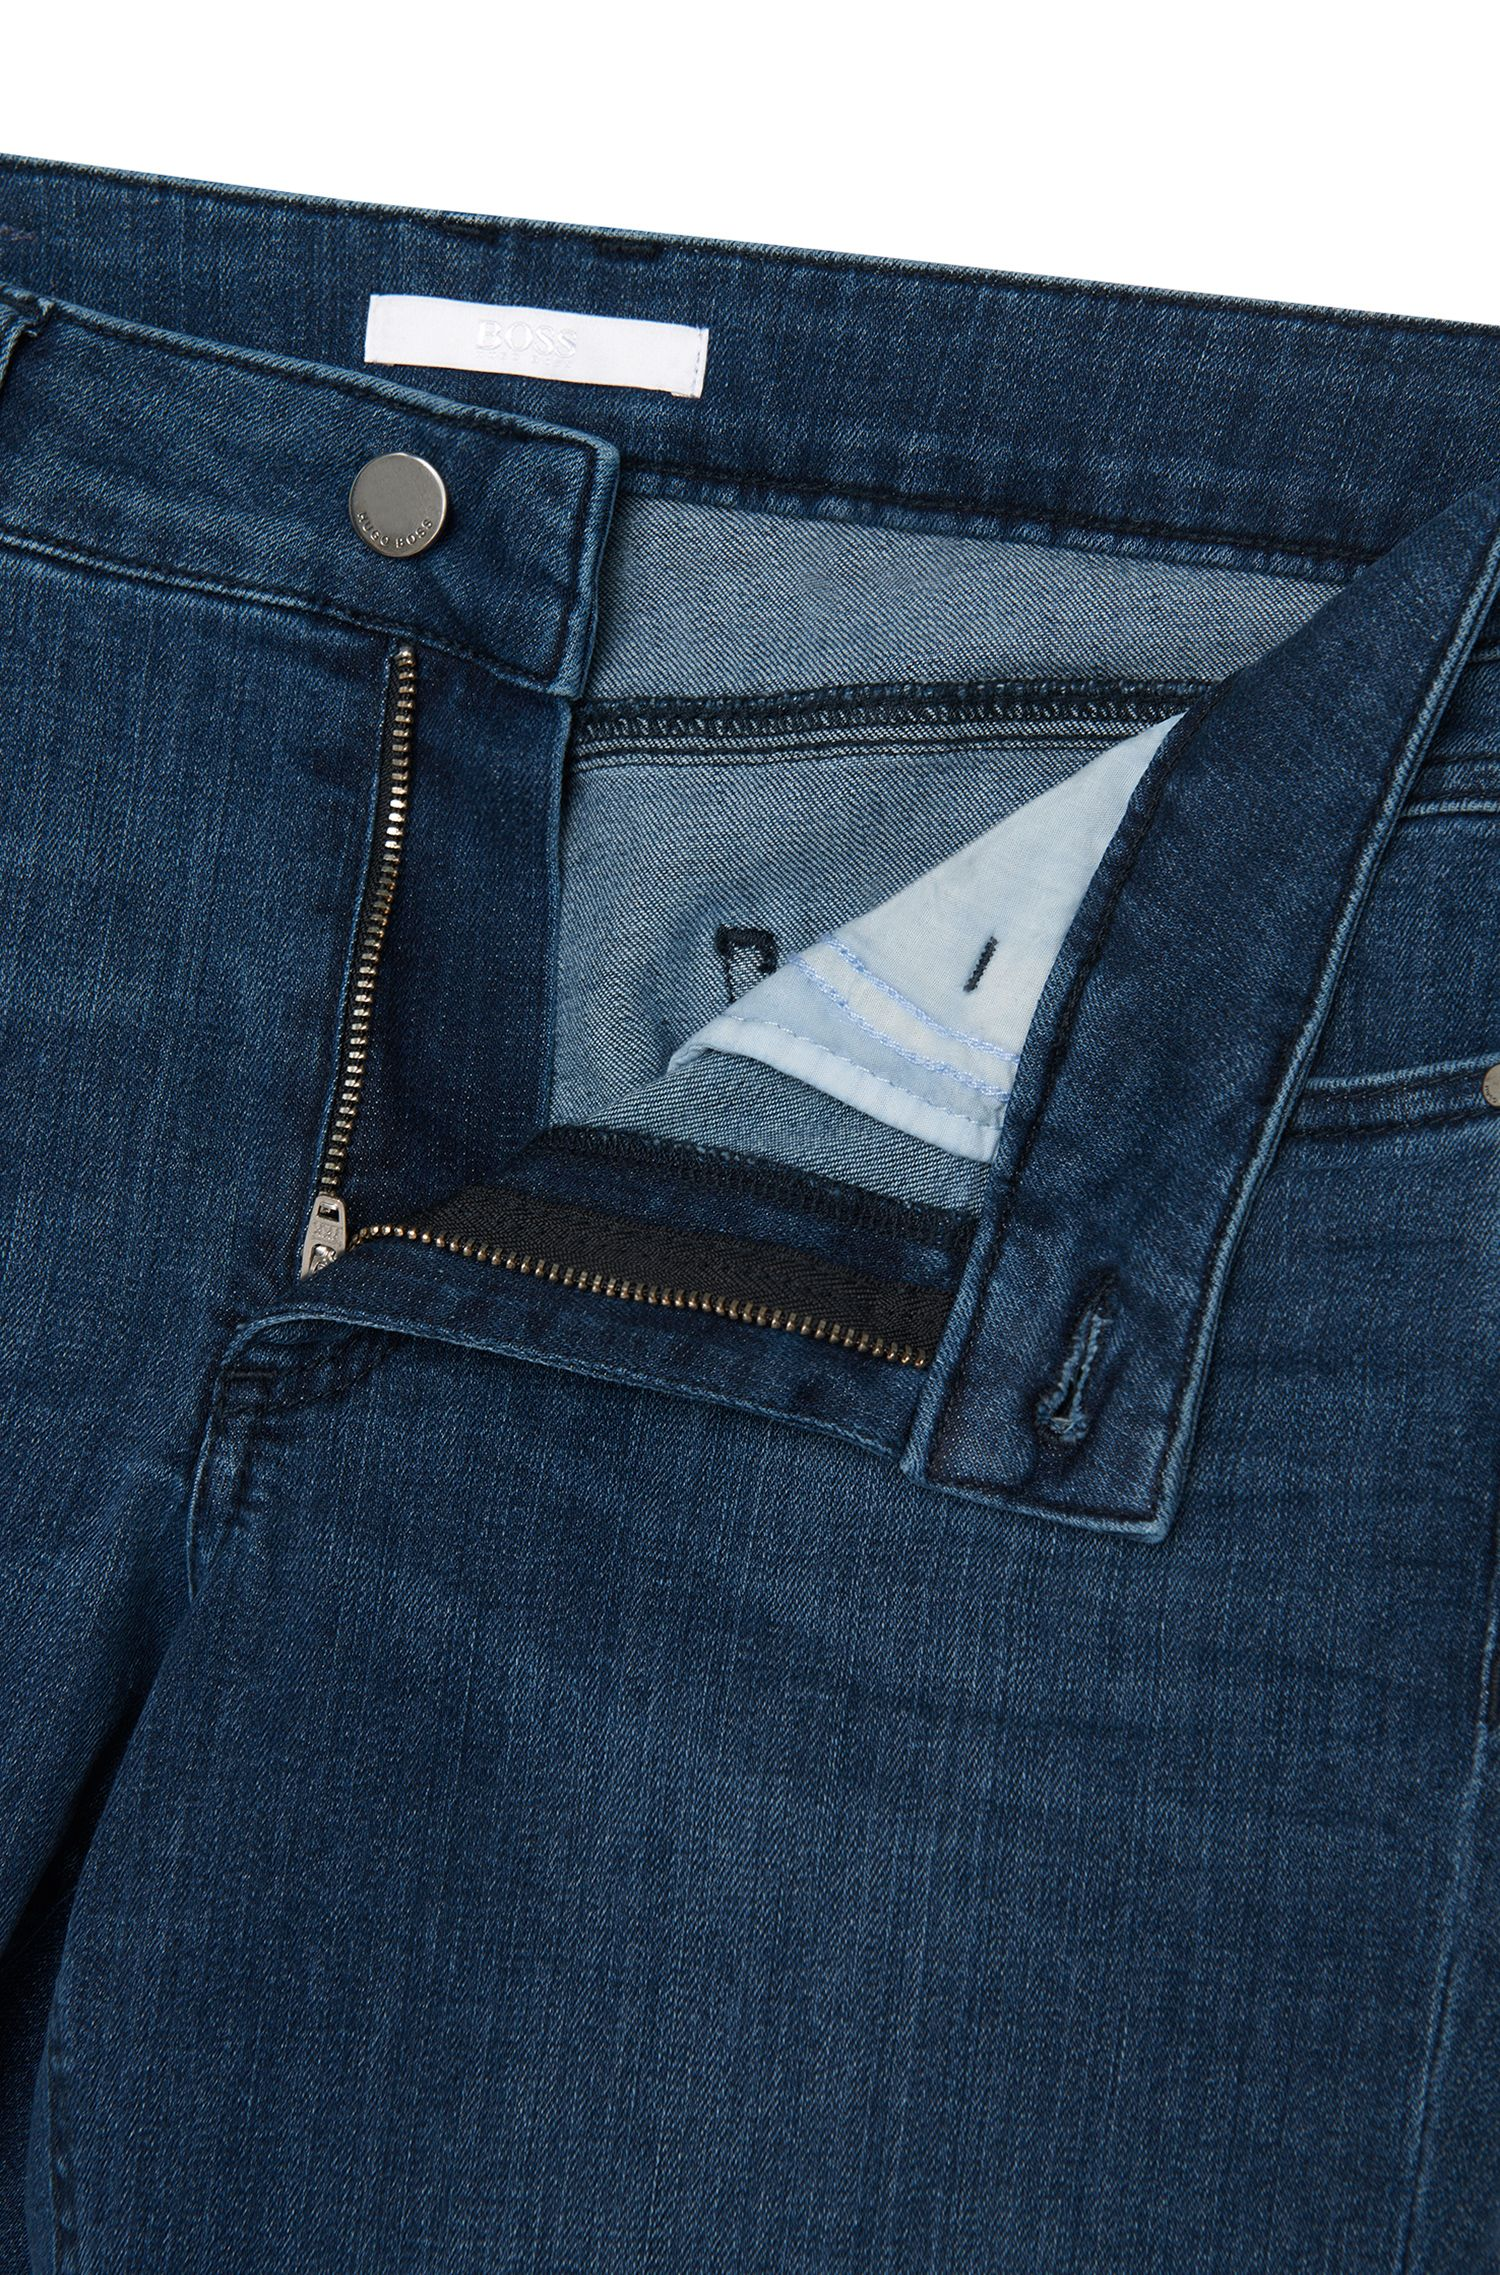 Regular-Fit Jeans aus elastischem Baumwoll-Mix in Cropped-Länge: 'Nelin'